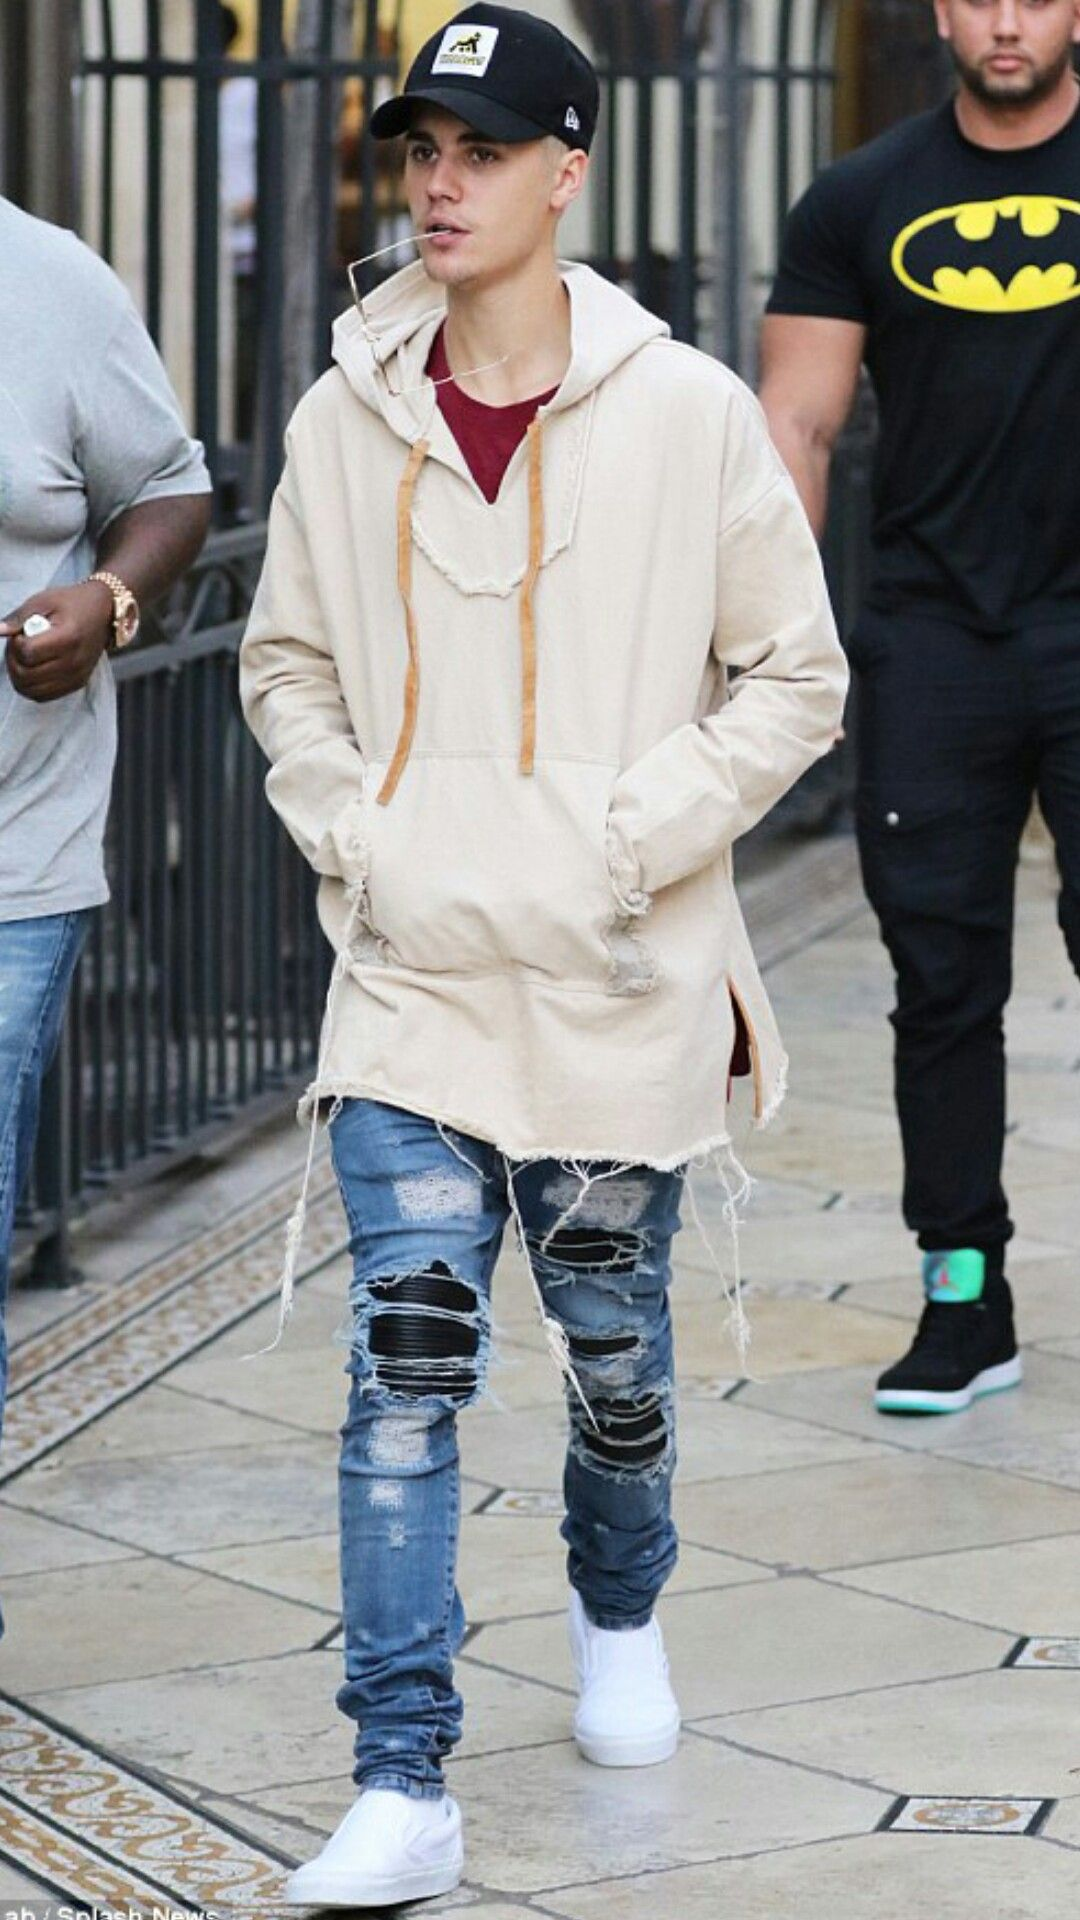 pingood vibes on justin bieber  justin bieber style